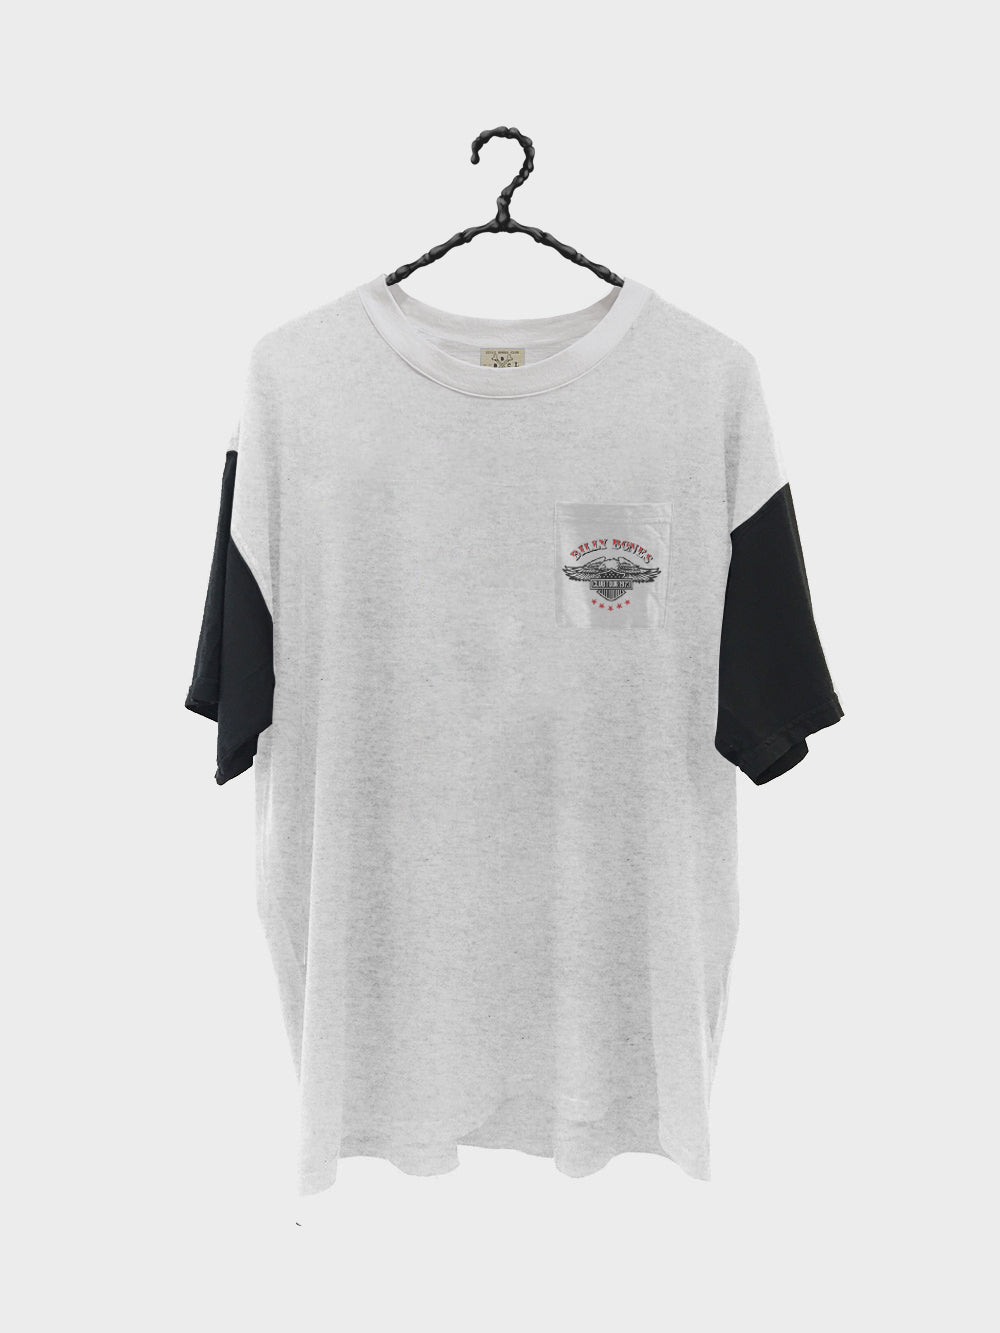 Moto Club Tee - Two Tone